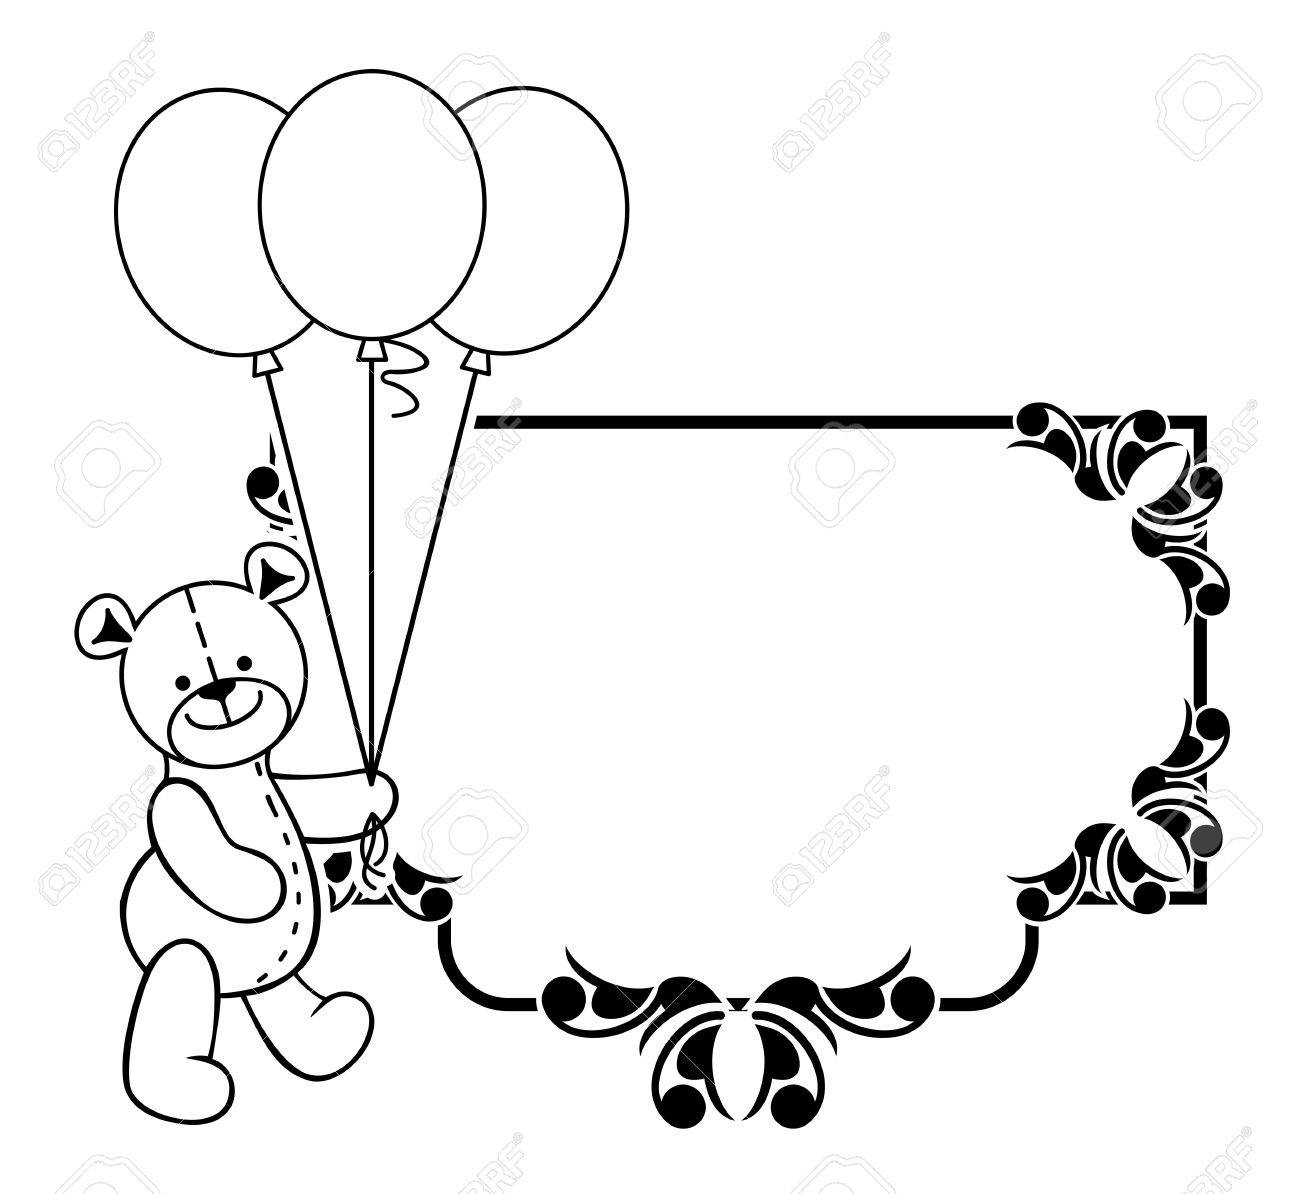 black and white frame with teddy bear plush toy vector clip rh 123rf com teddy bear clipart black and white teddy bear clipart black and white